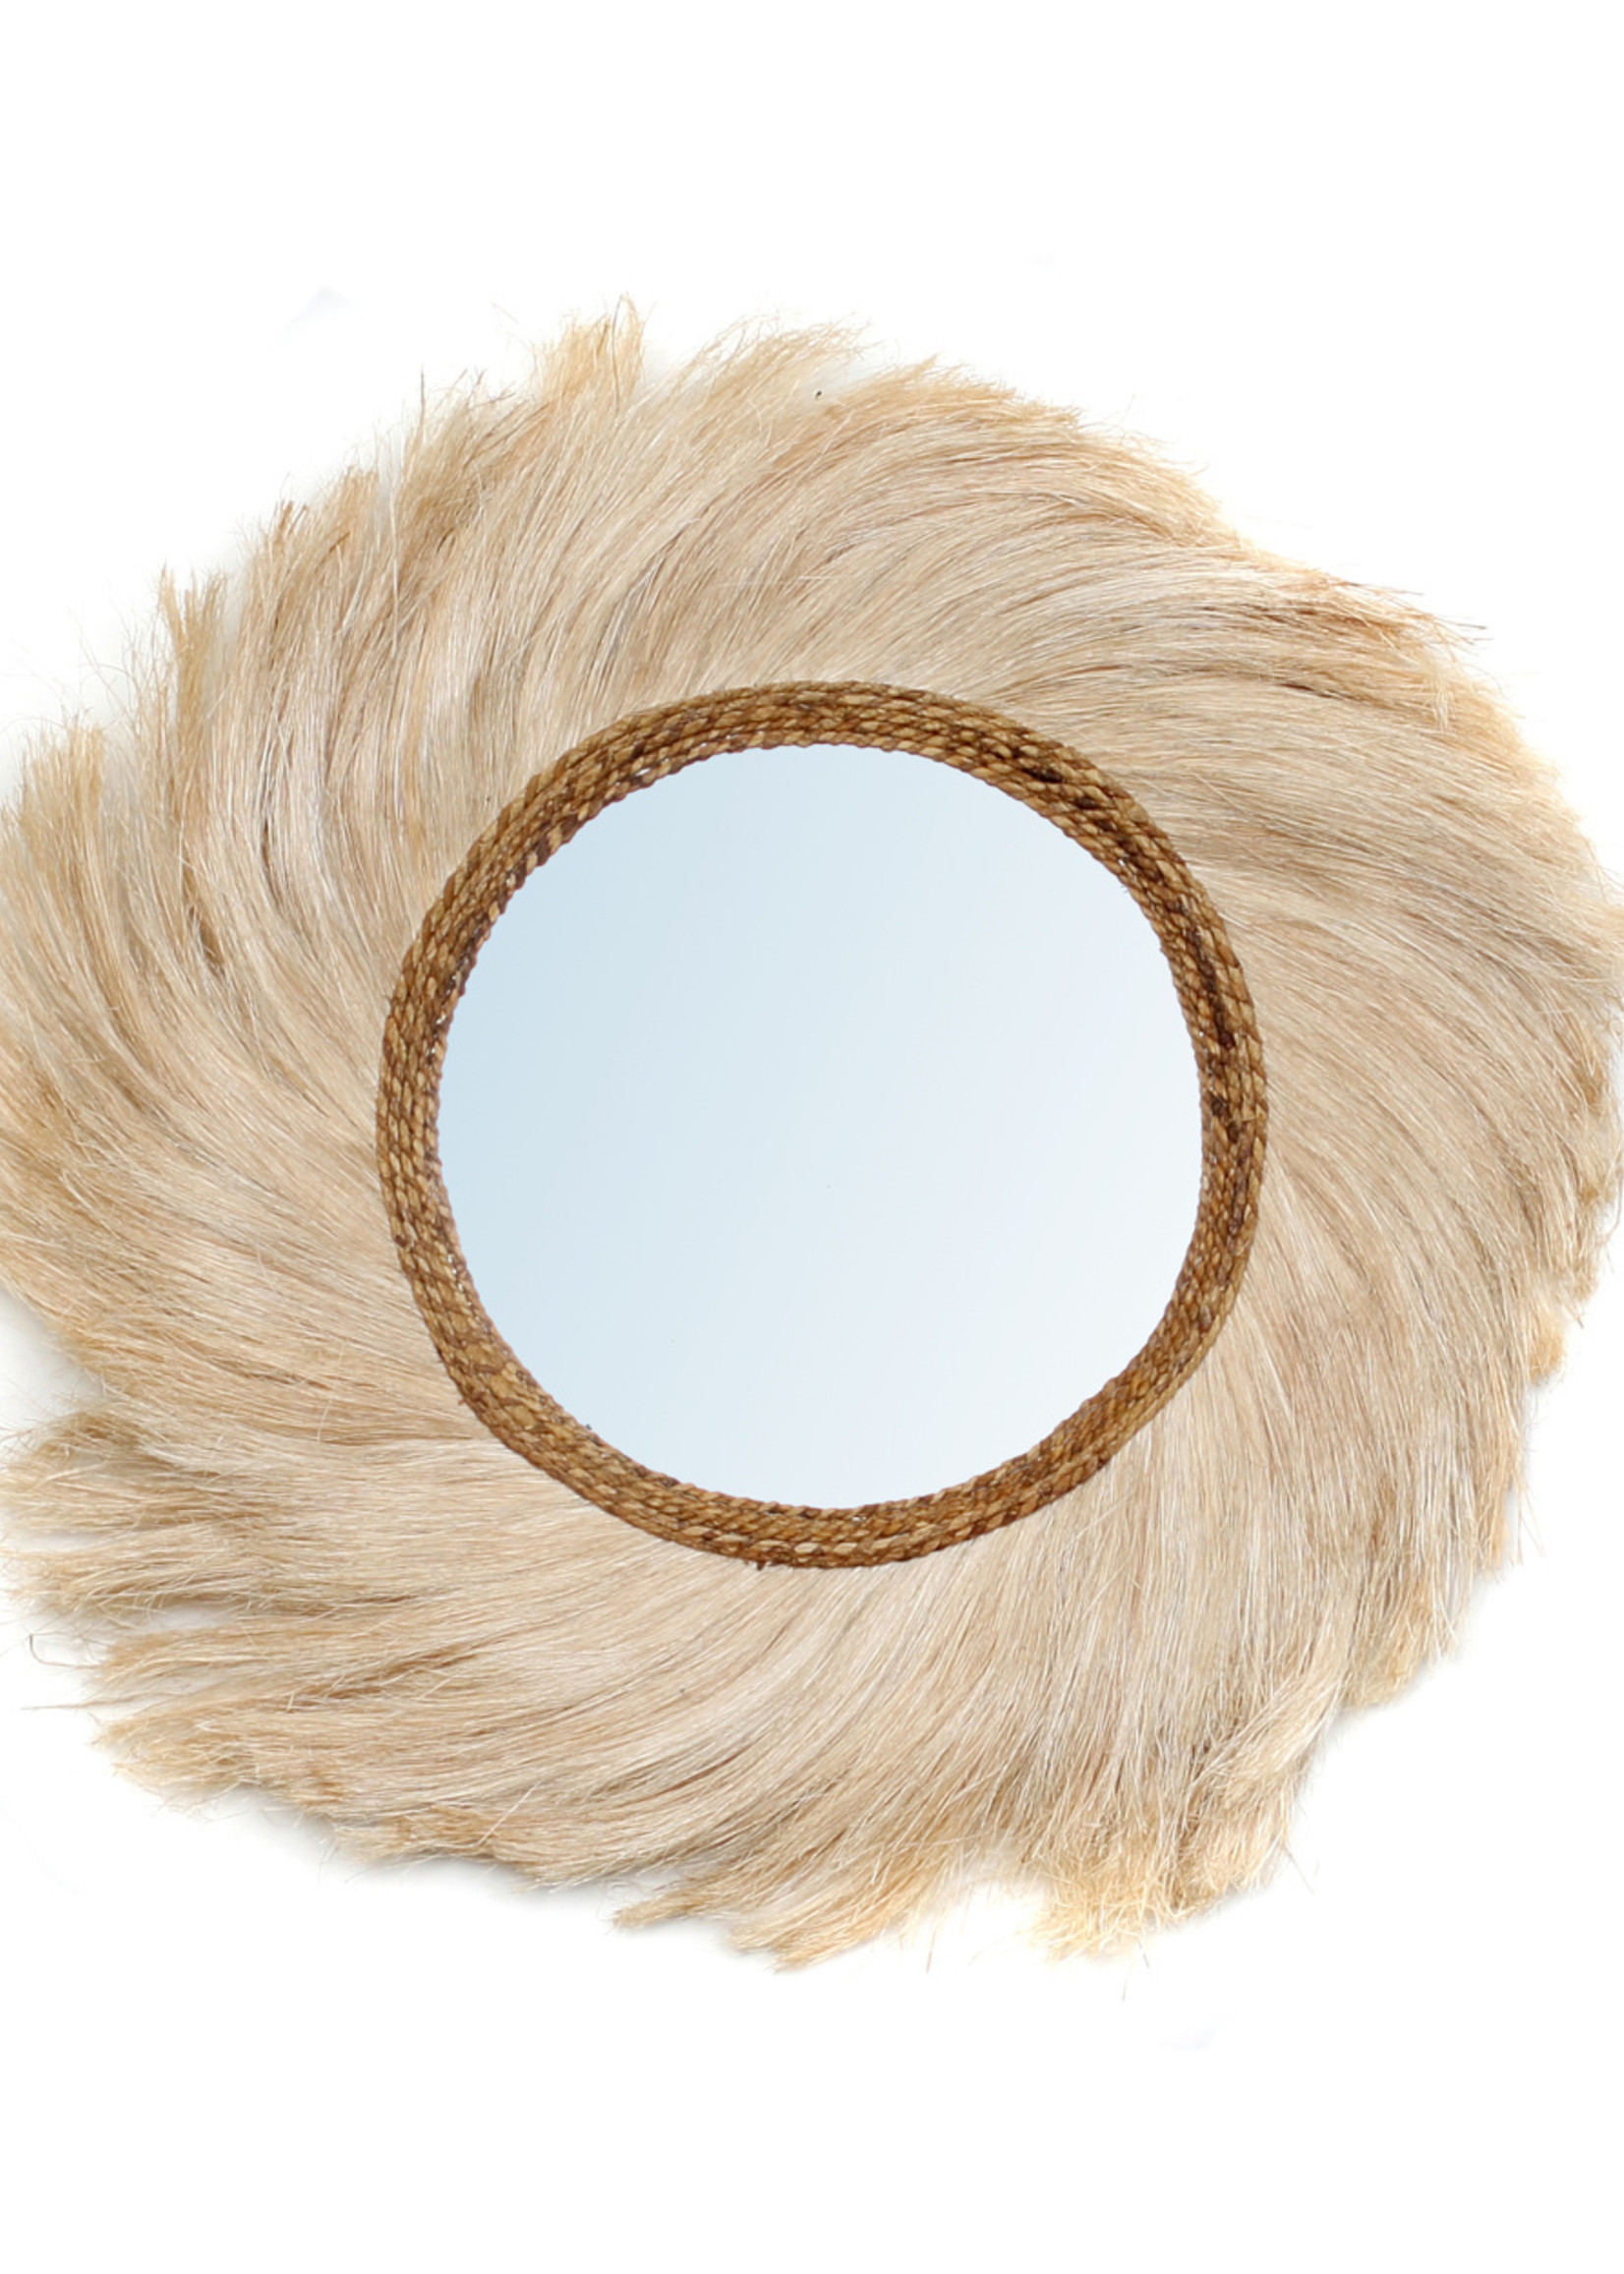 The Hathi Mirror - Natural - L